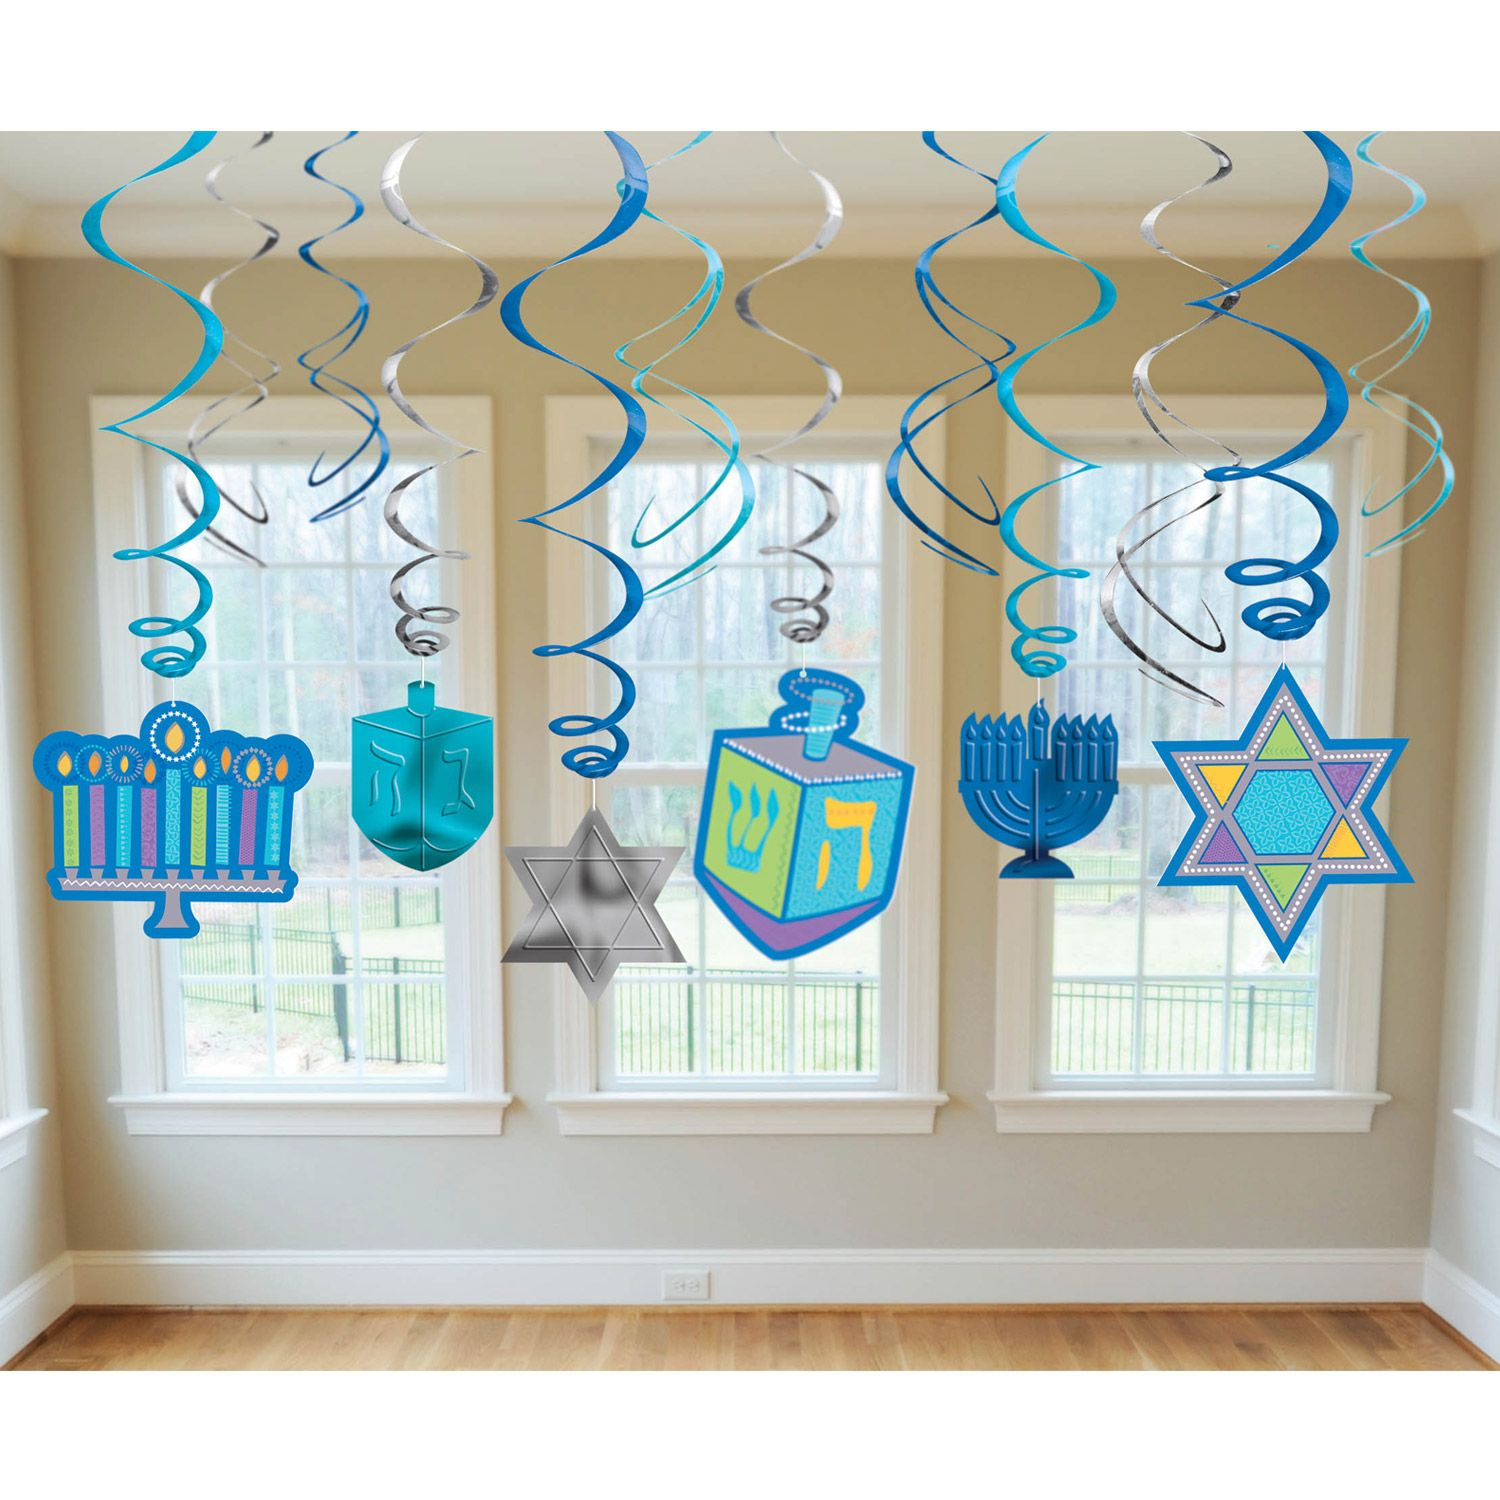 Hanukkah Hanging Foil Decorations (12 Pieces) - Party Supplies